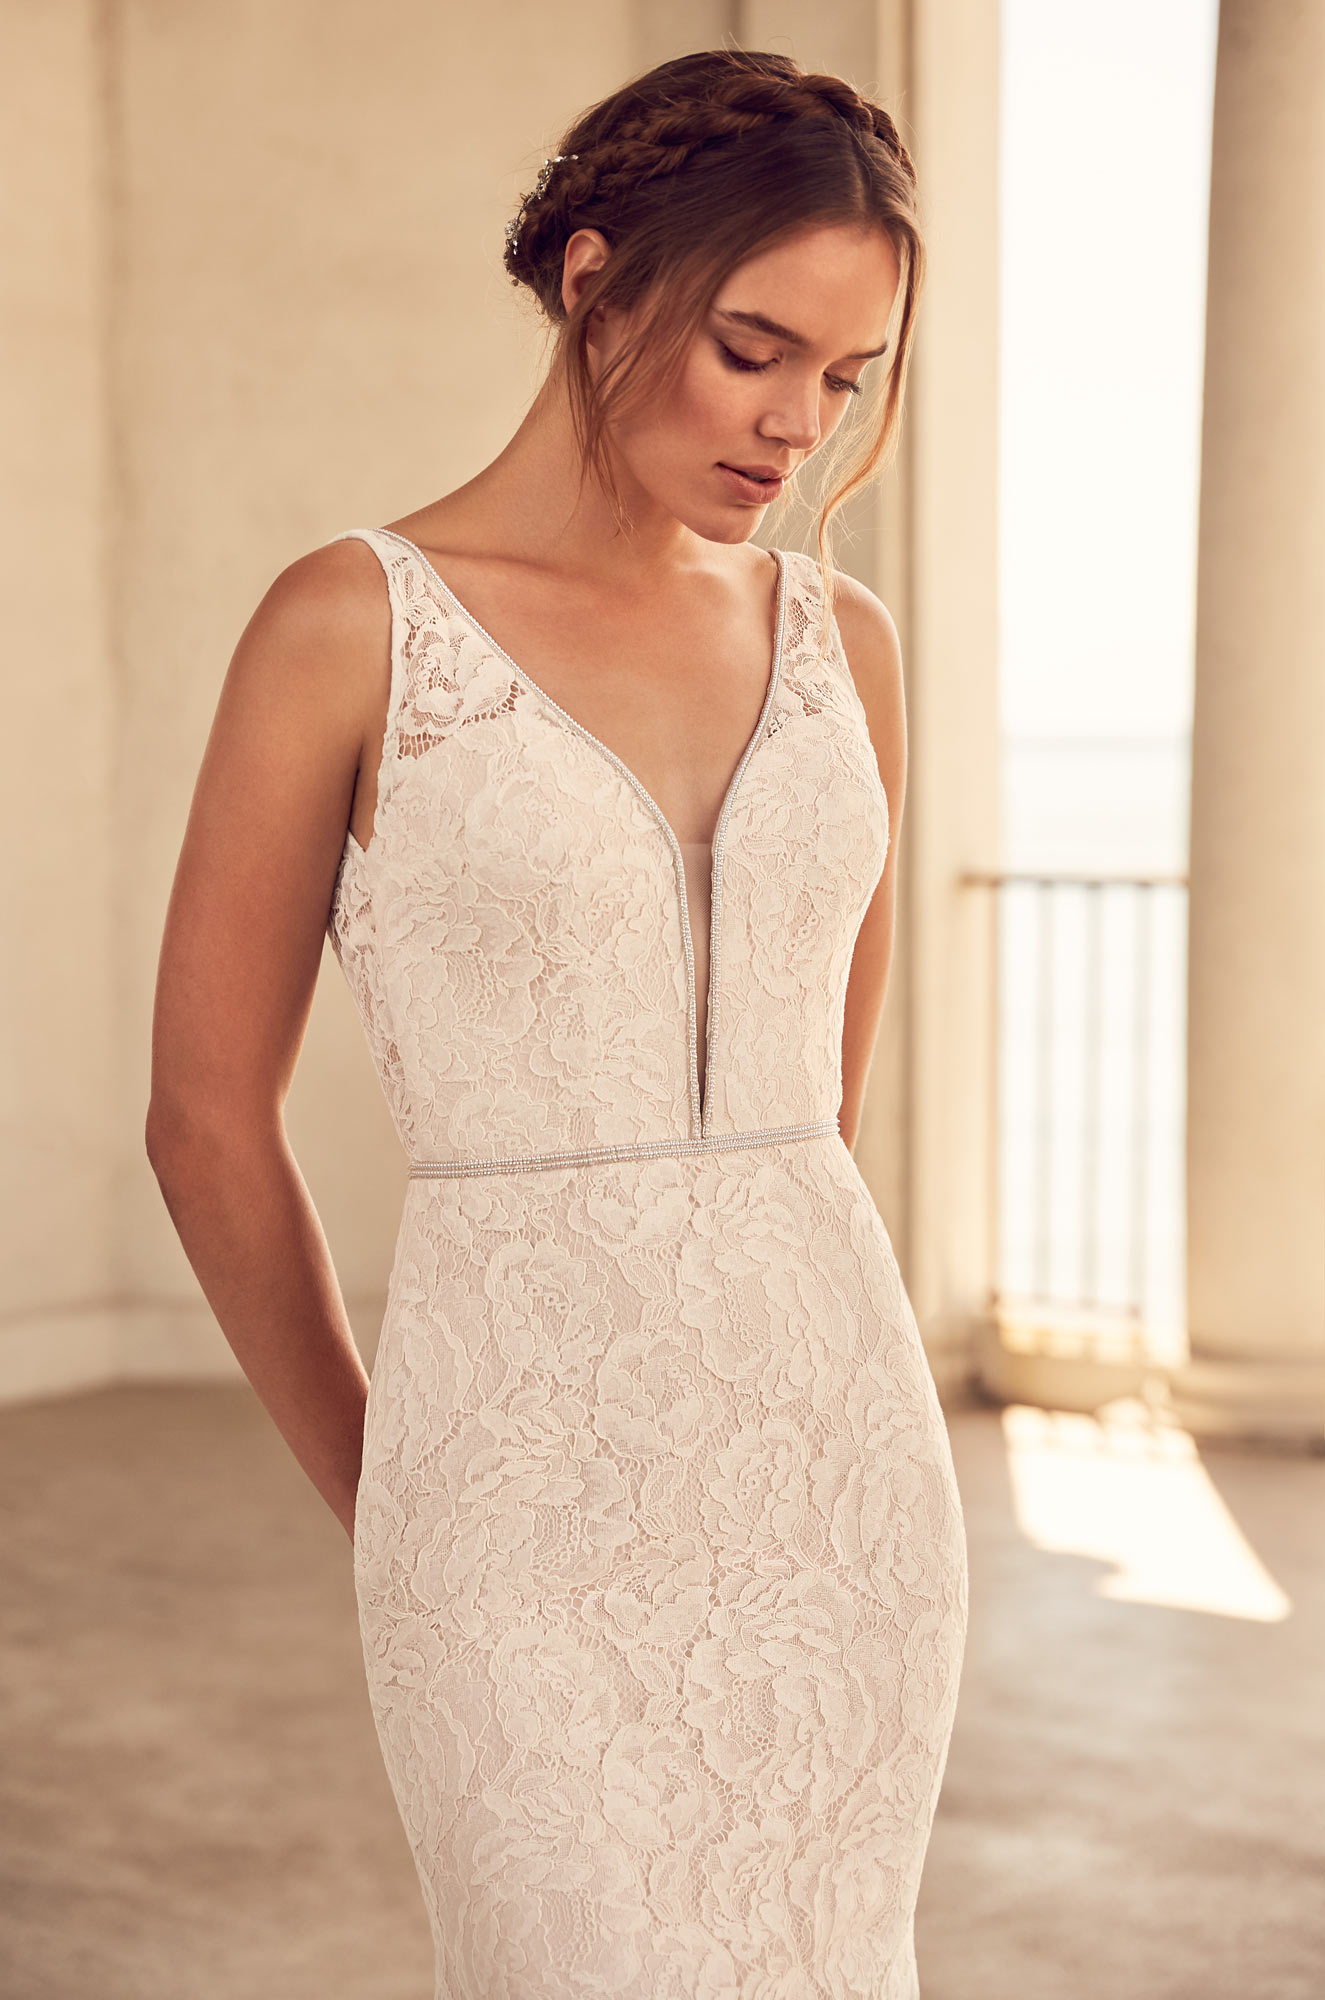 Beaded Neckline Wedding Dress - Style #4792 | Paloma Blanca